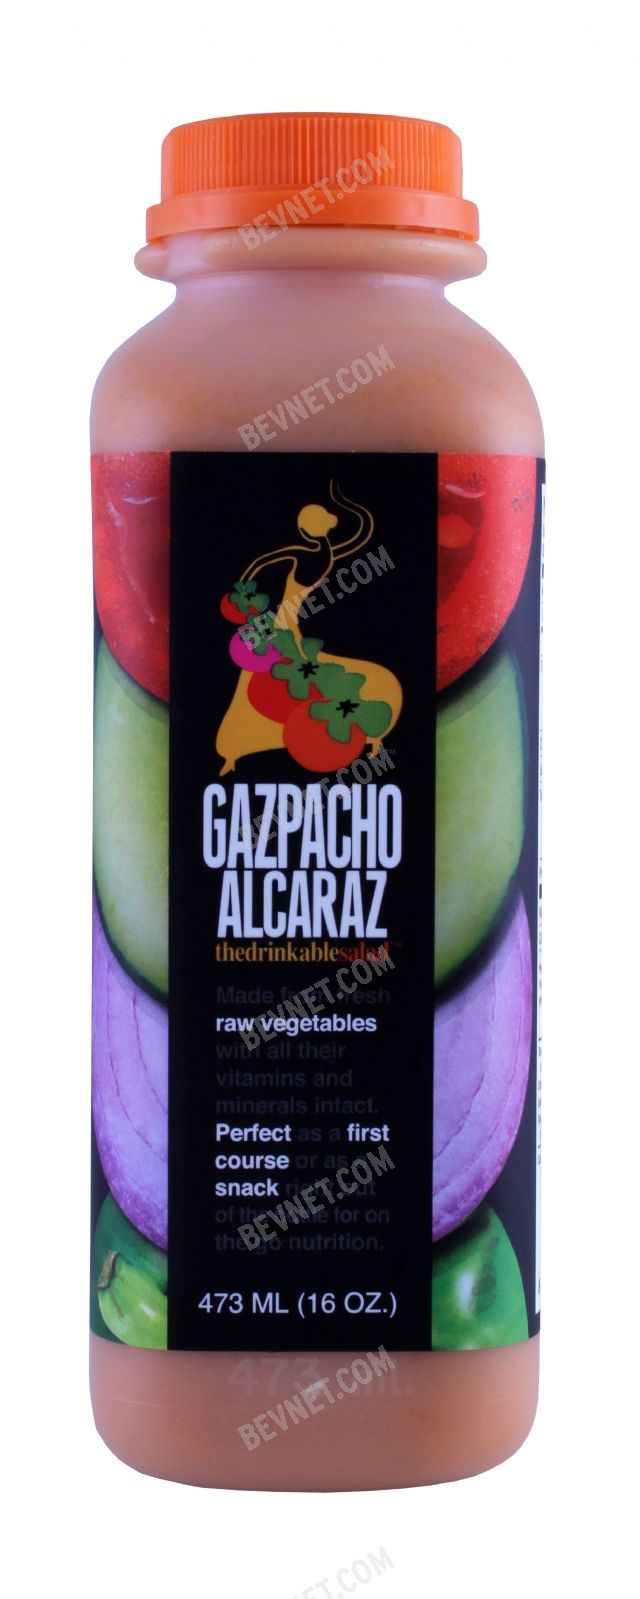 Gazpacho Alcaraz, The Drinkable Salad: